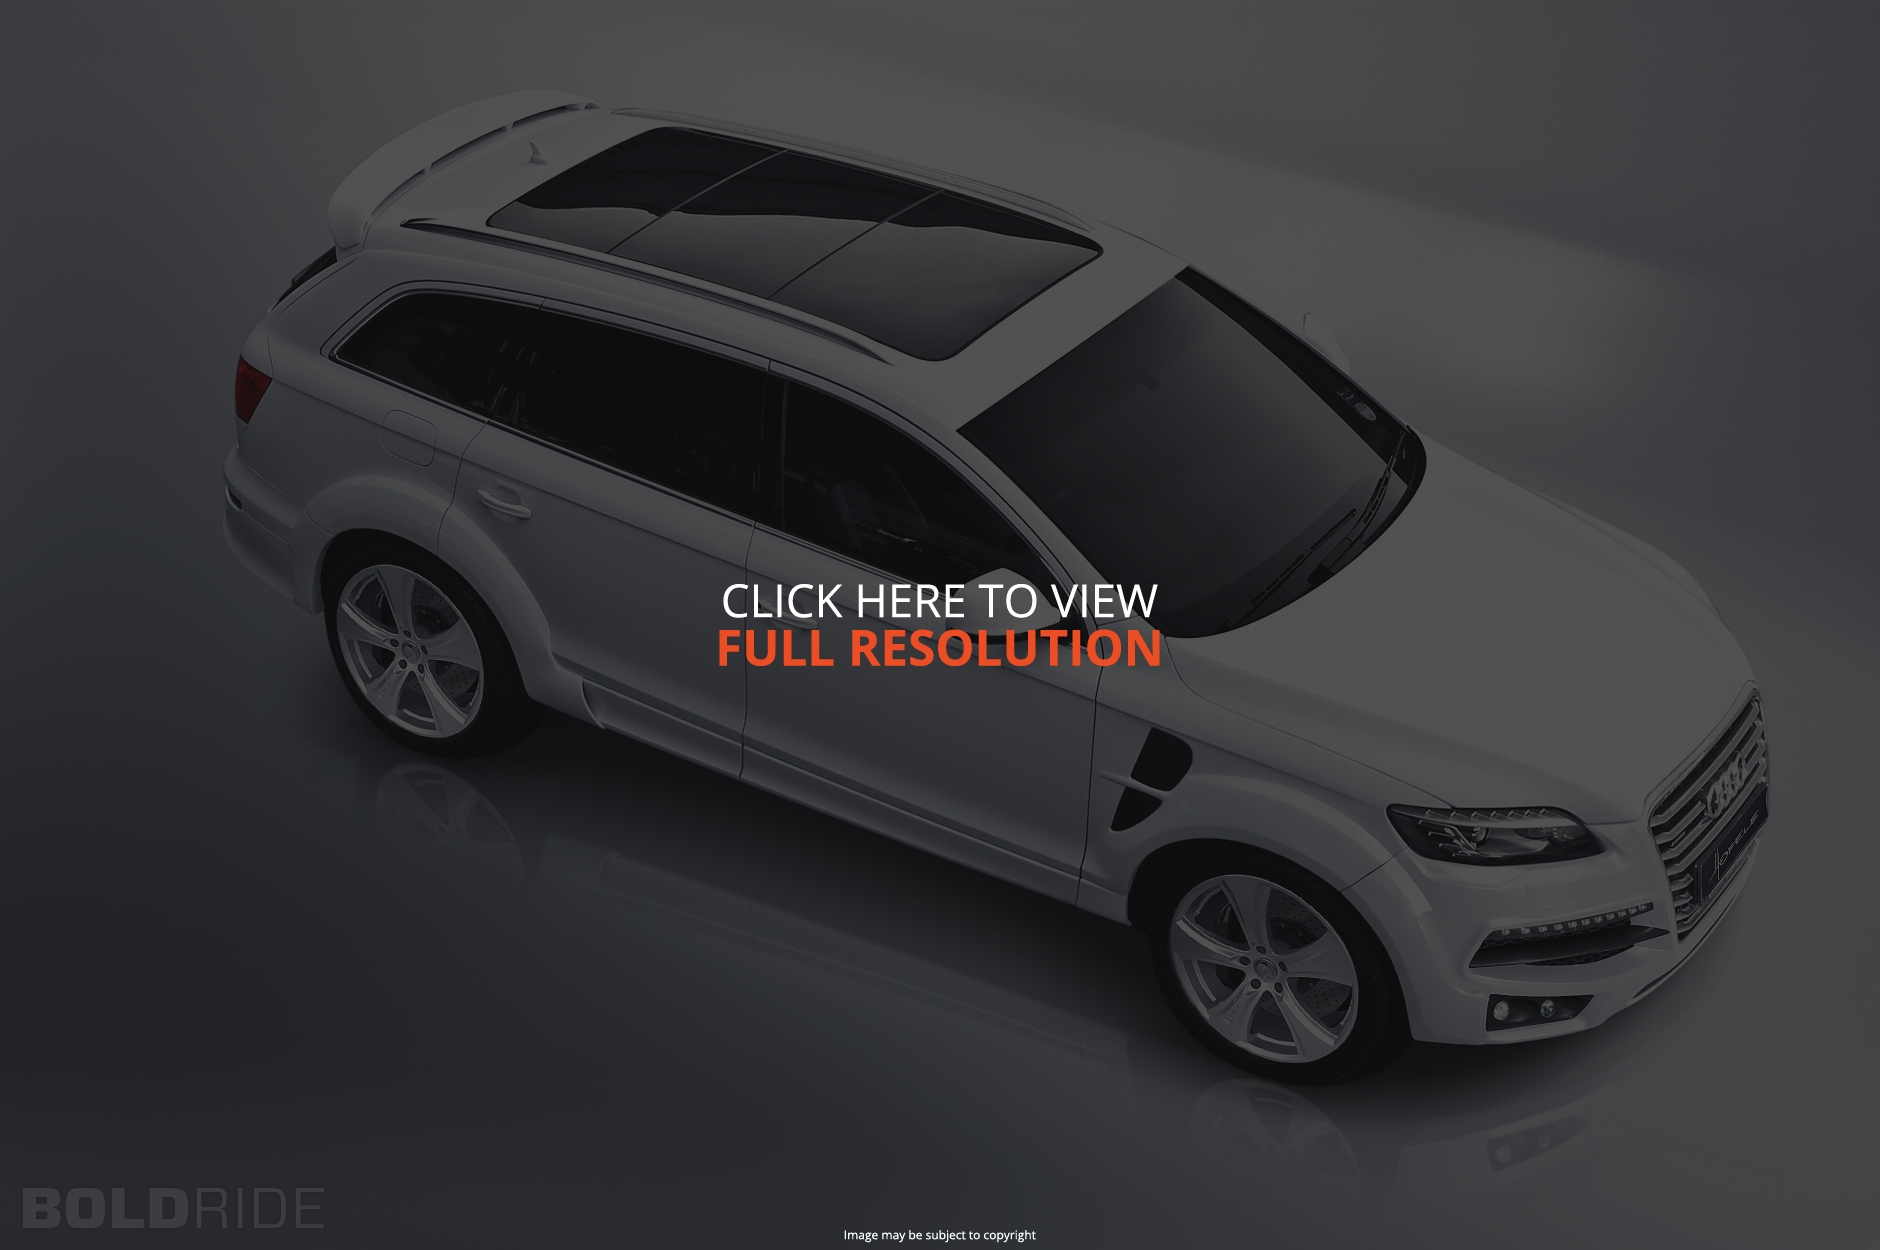 cool truck gallery audi trend view trucks front line tdi s photo prevnext